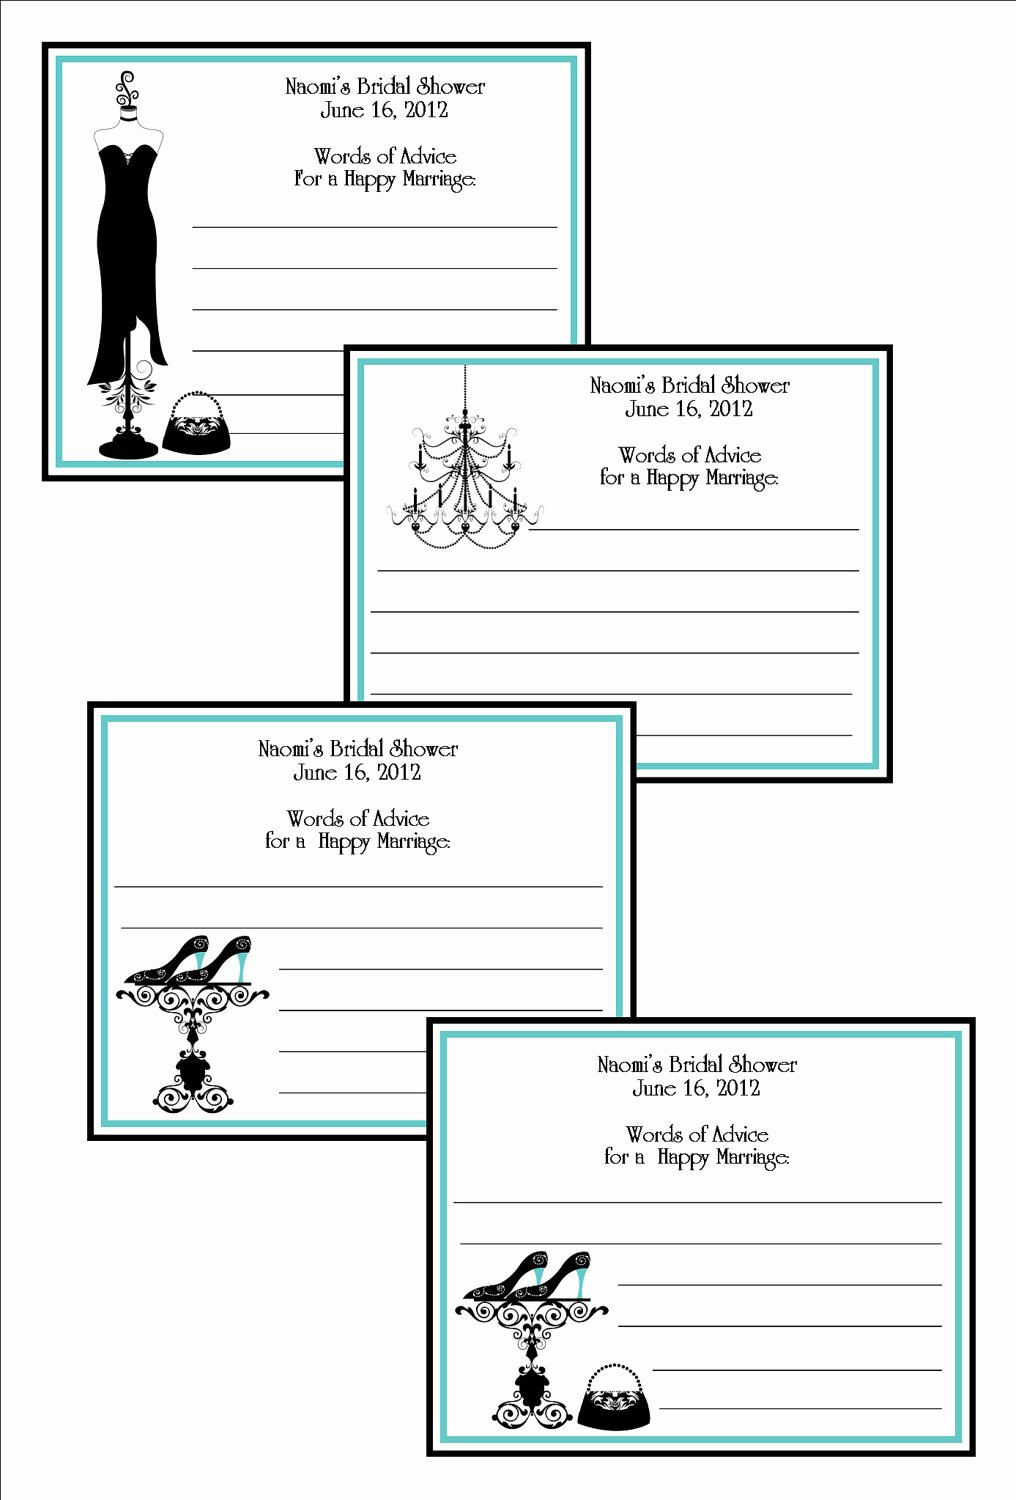 Bridal Shower Advice Cards Lovely Personalized Bridal Shower Advice Cards Damask Style Blue